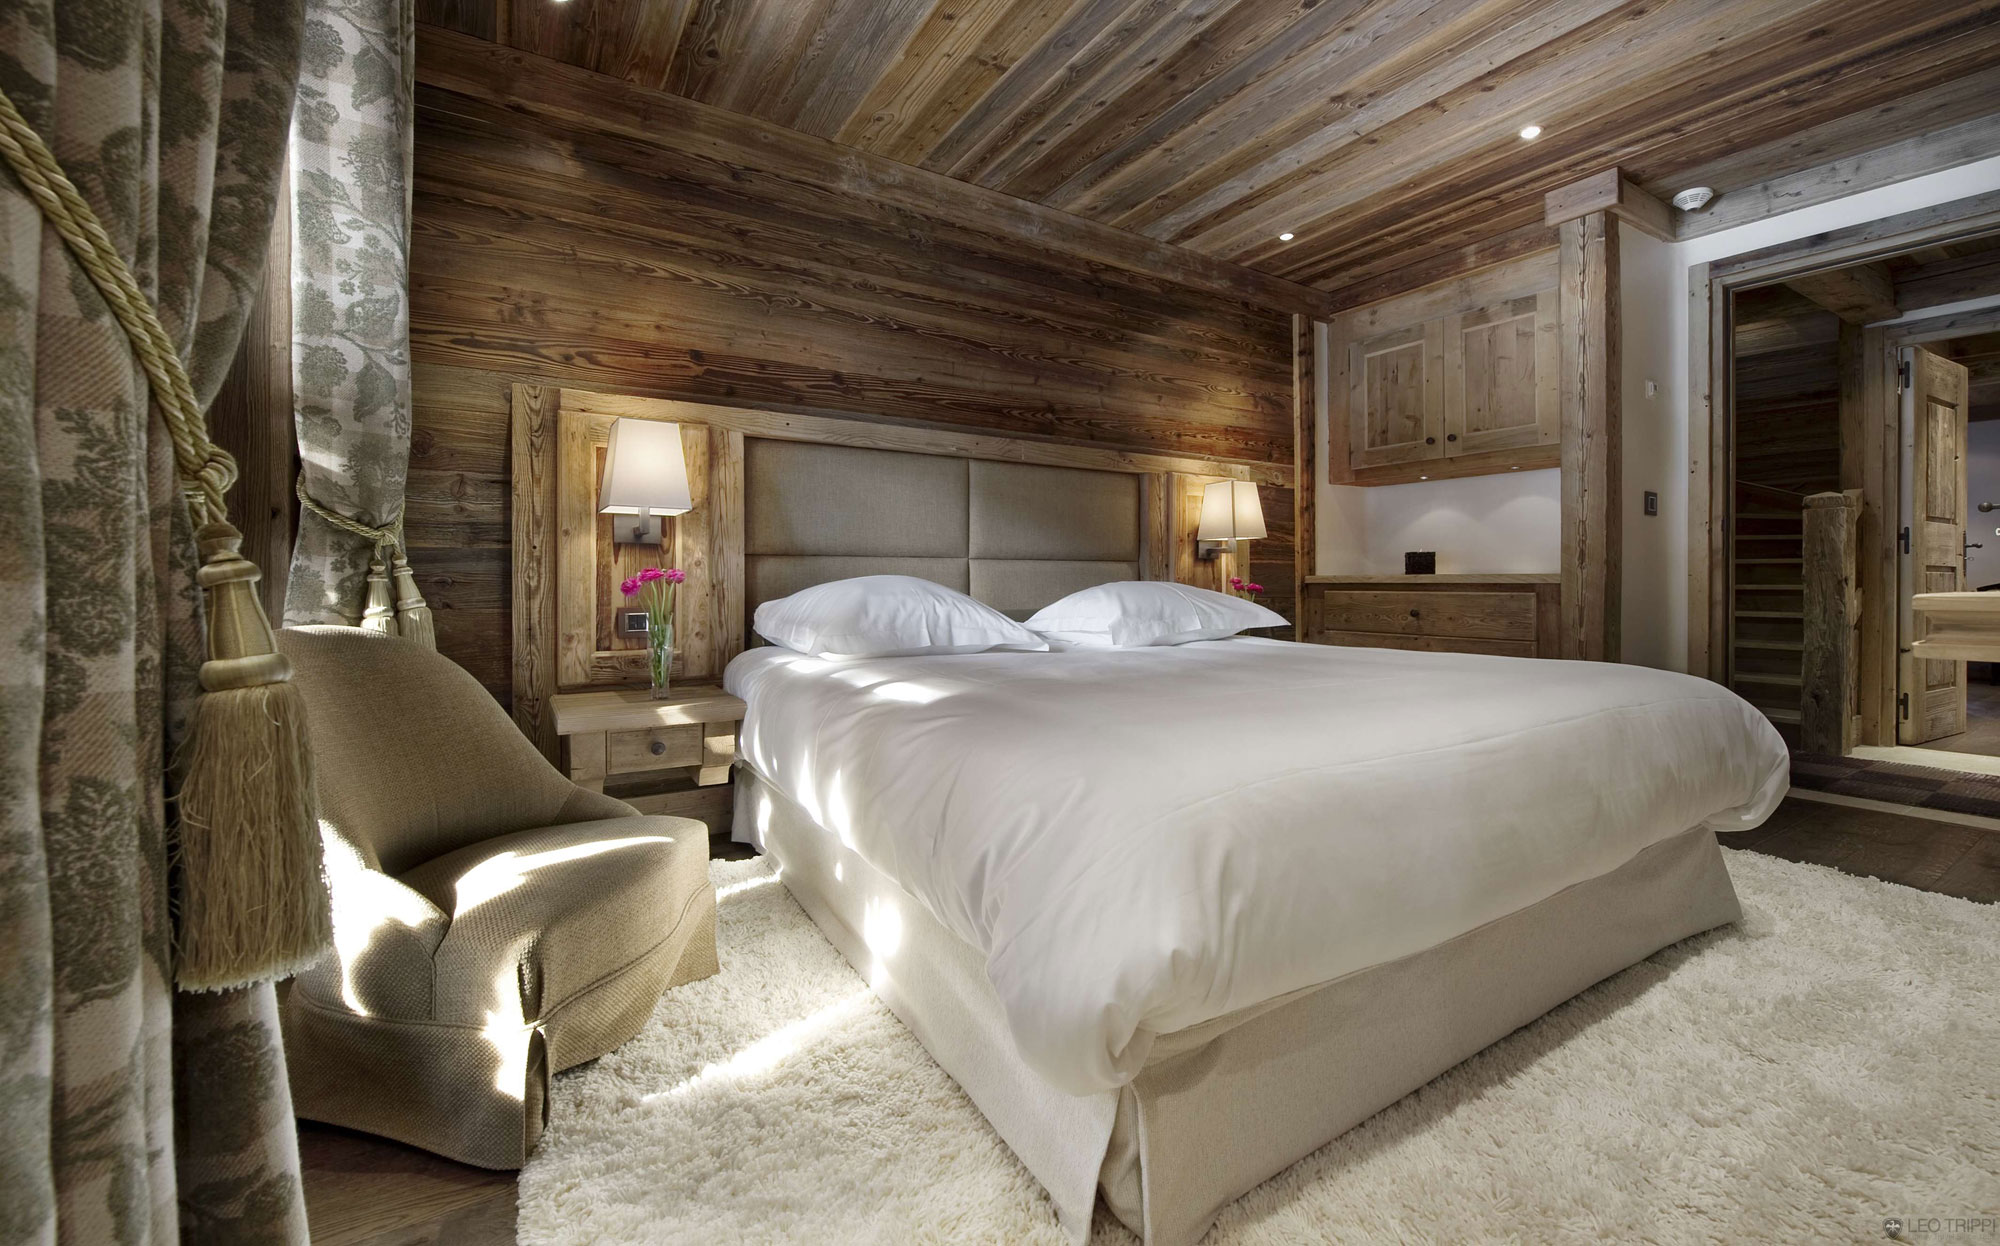 Rustic country home bedroom homedsgn.com